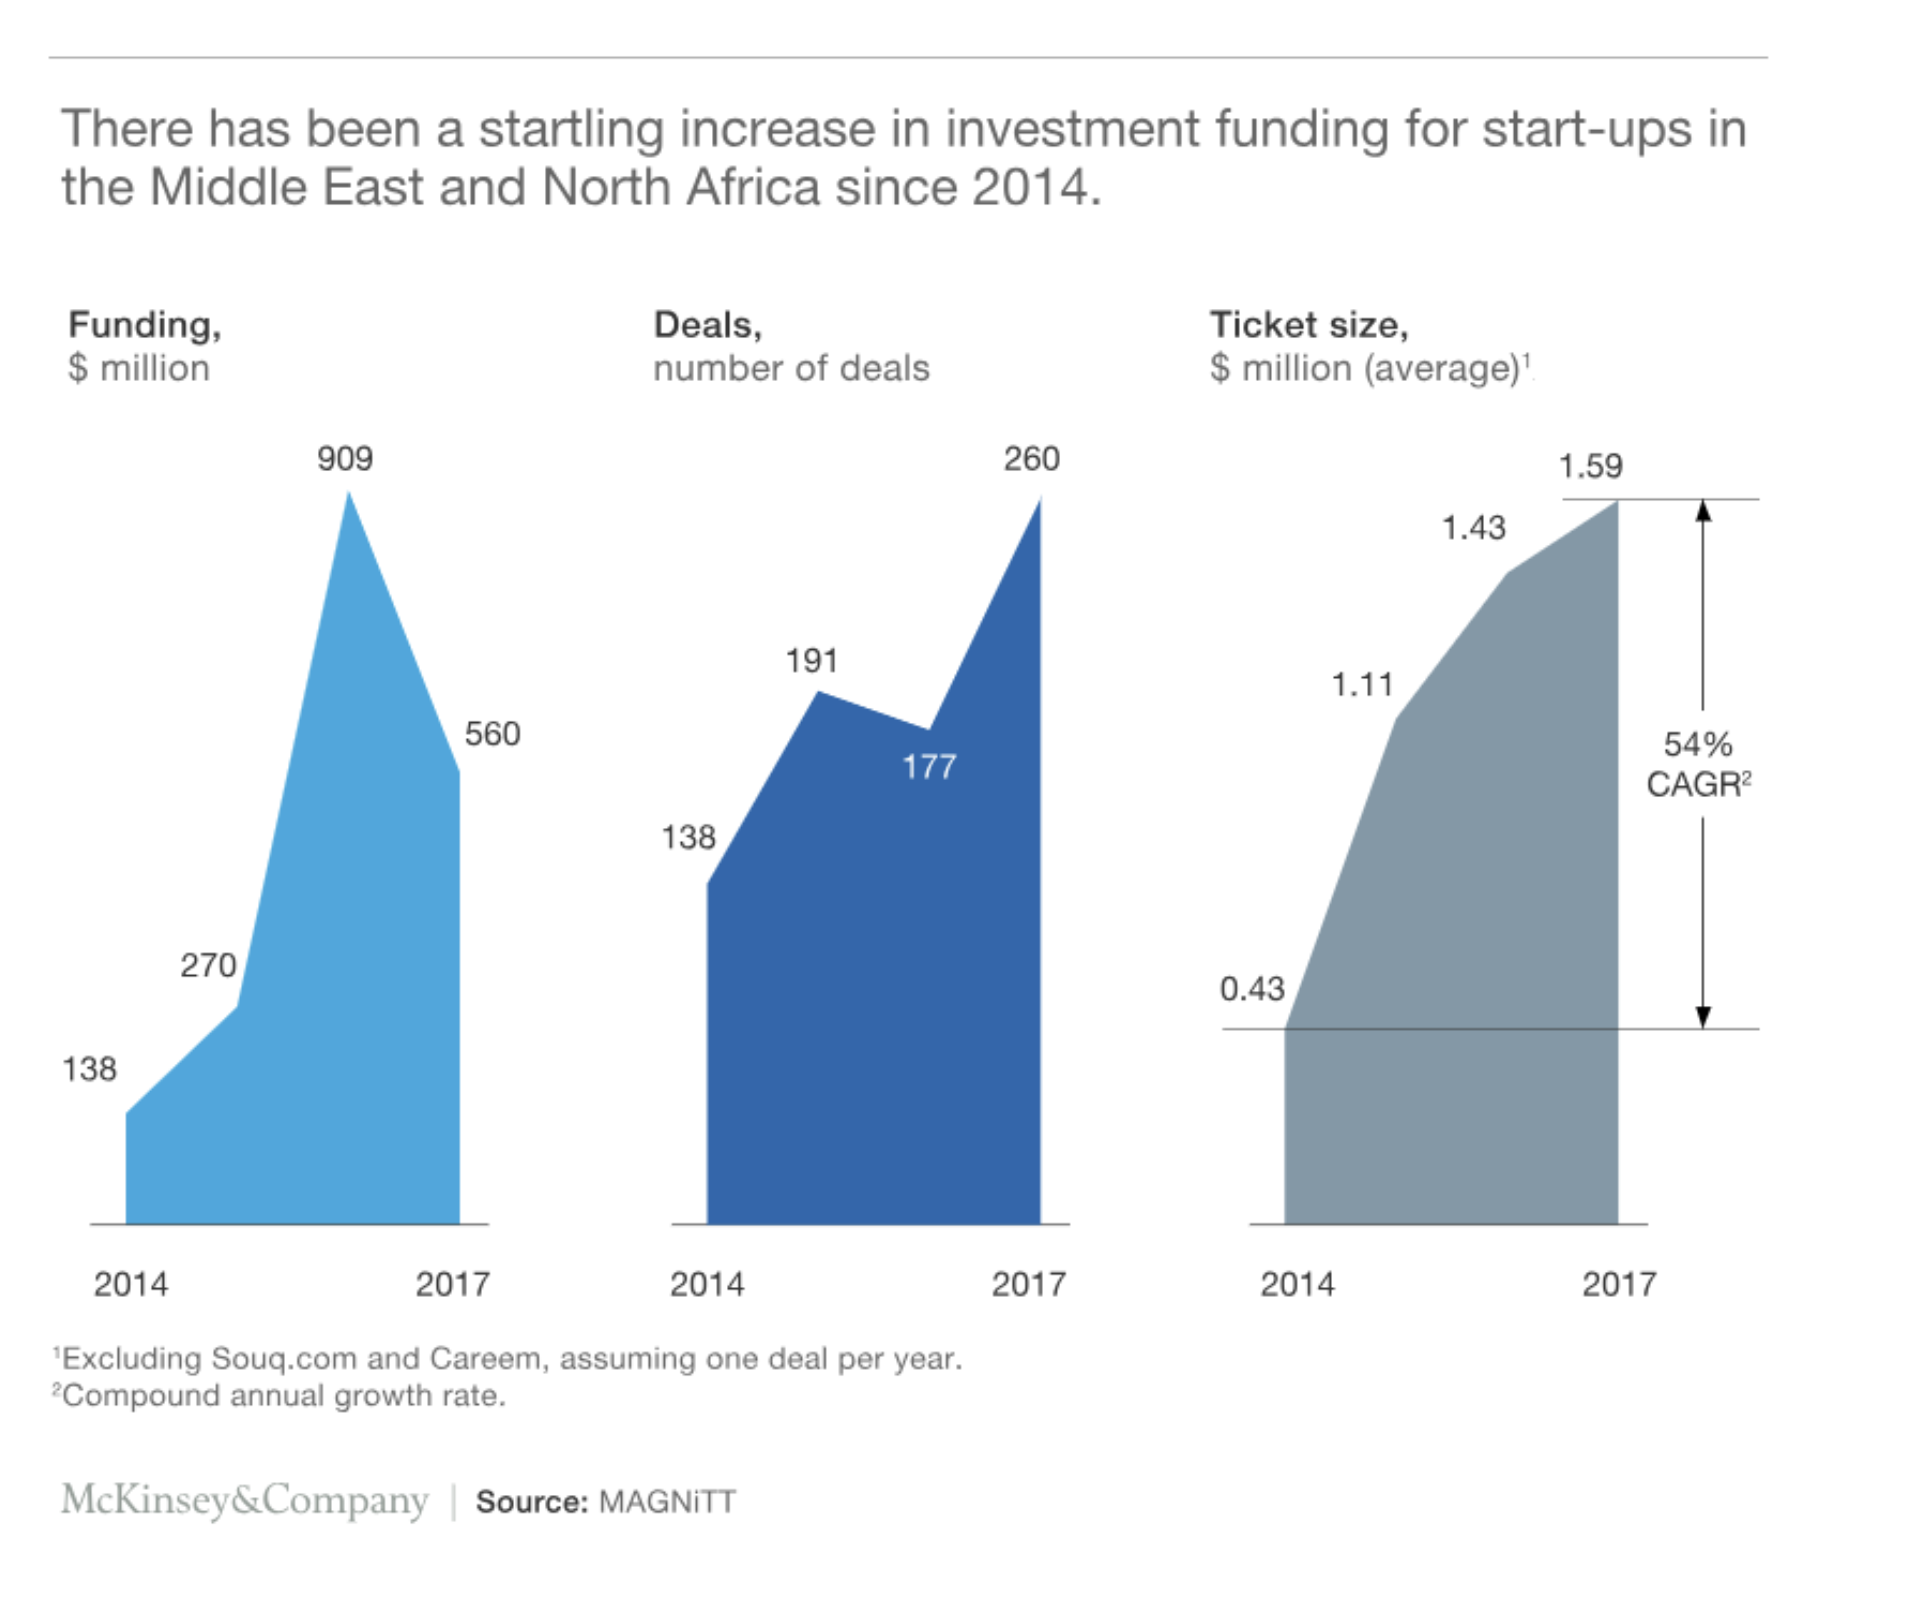 Start-ups are enjoying startling increases in investment